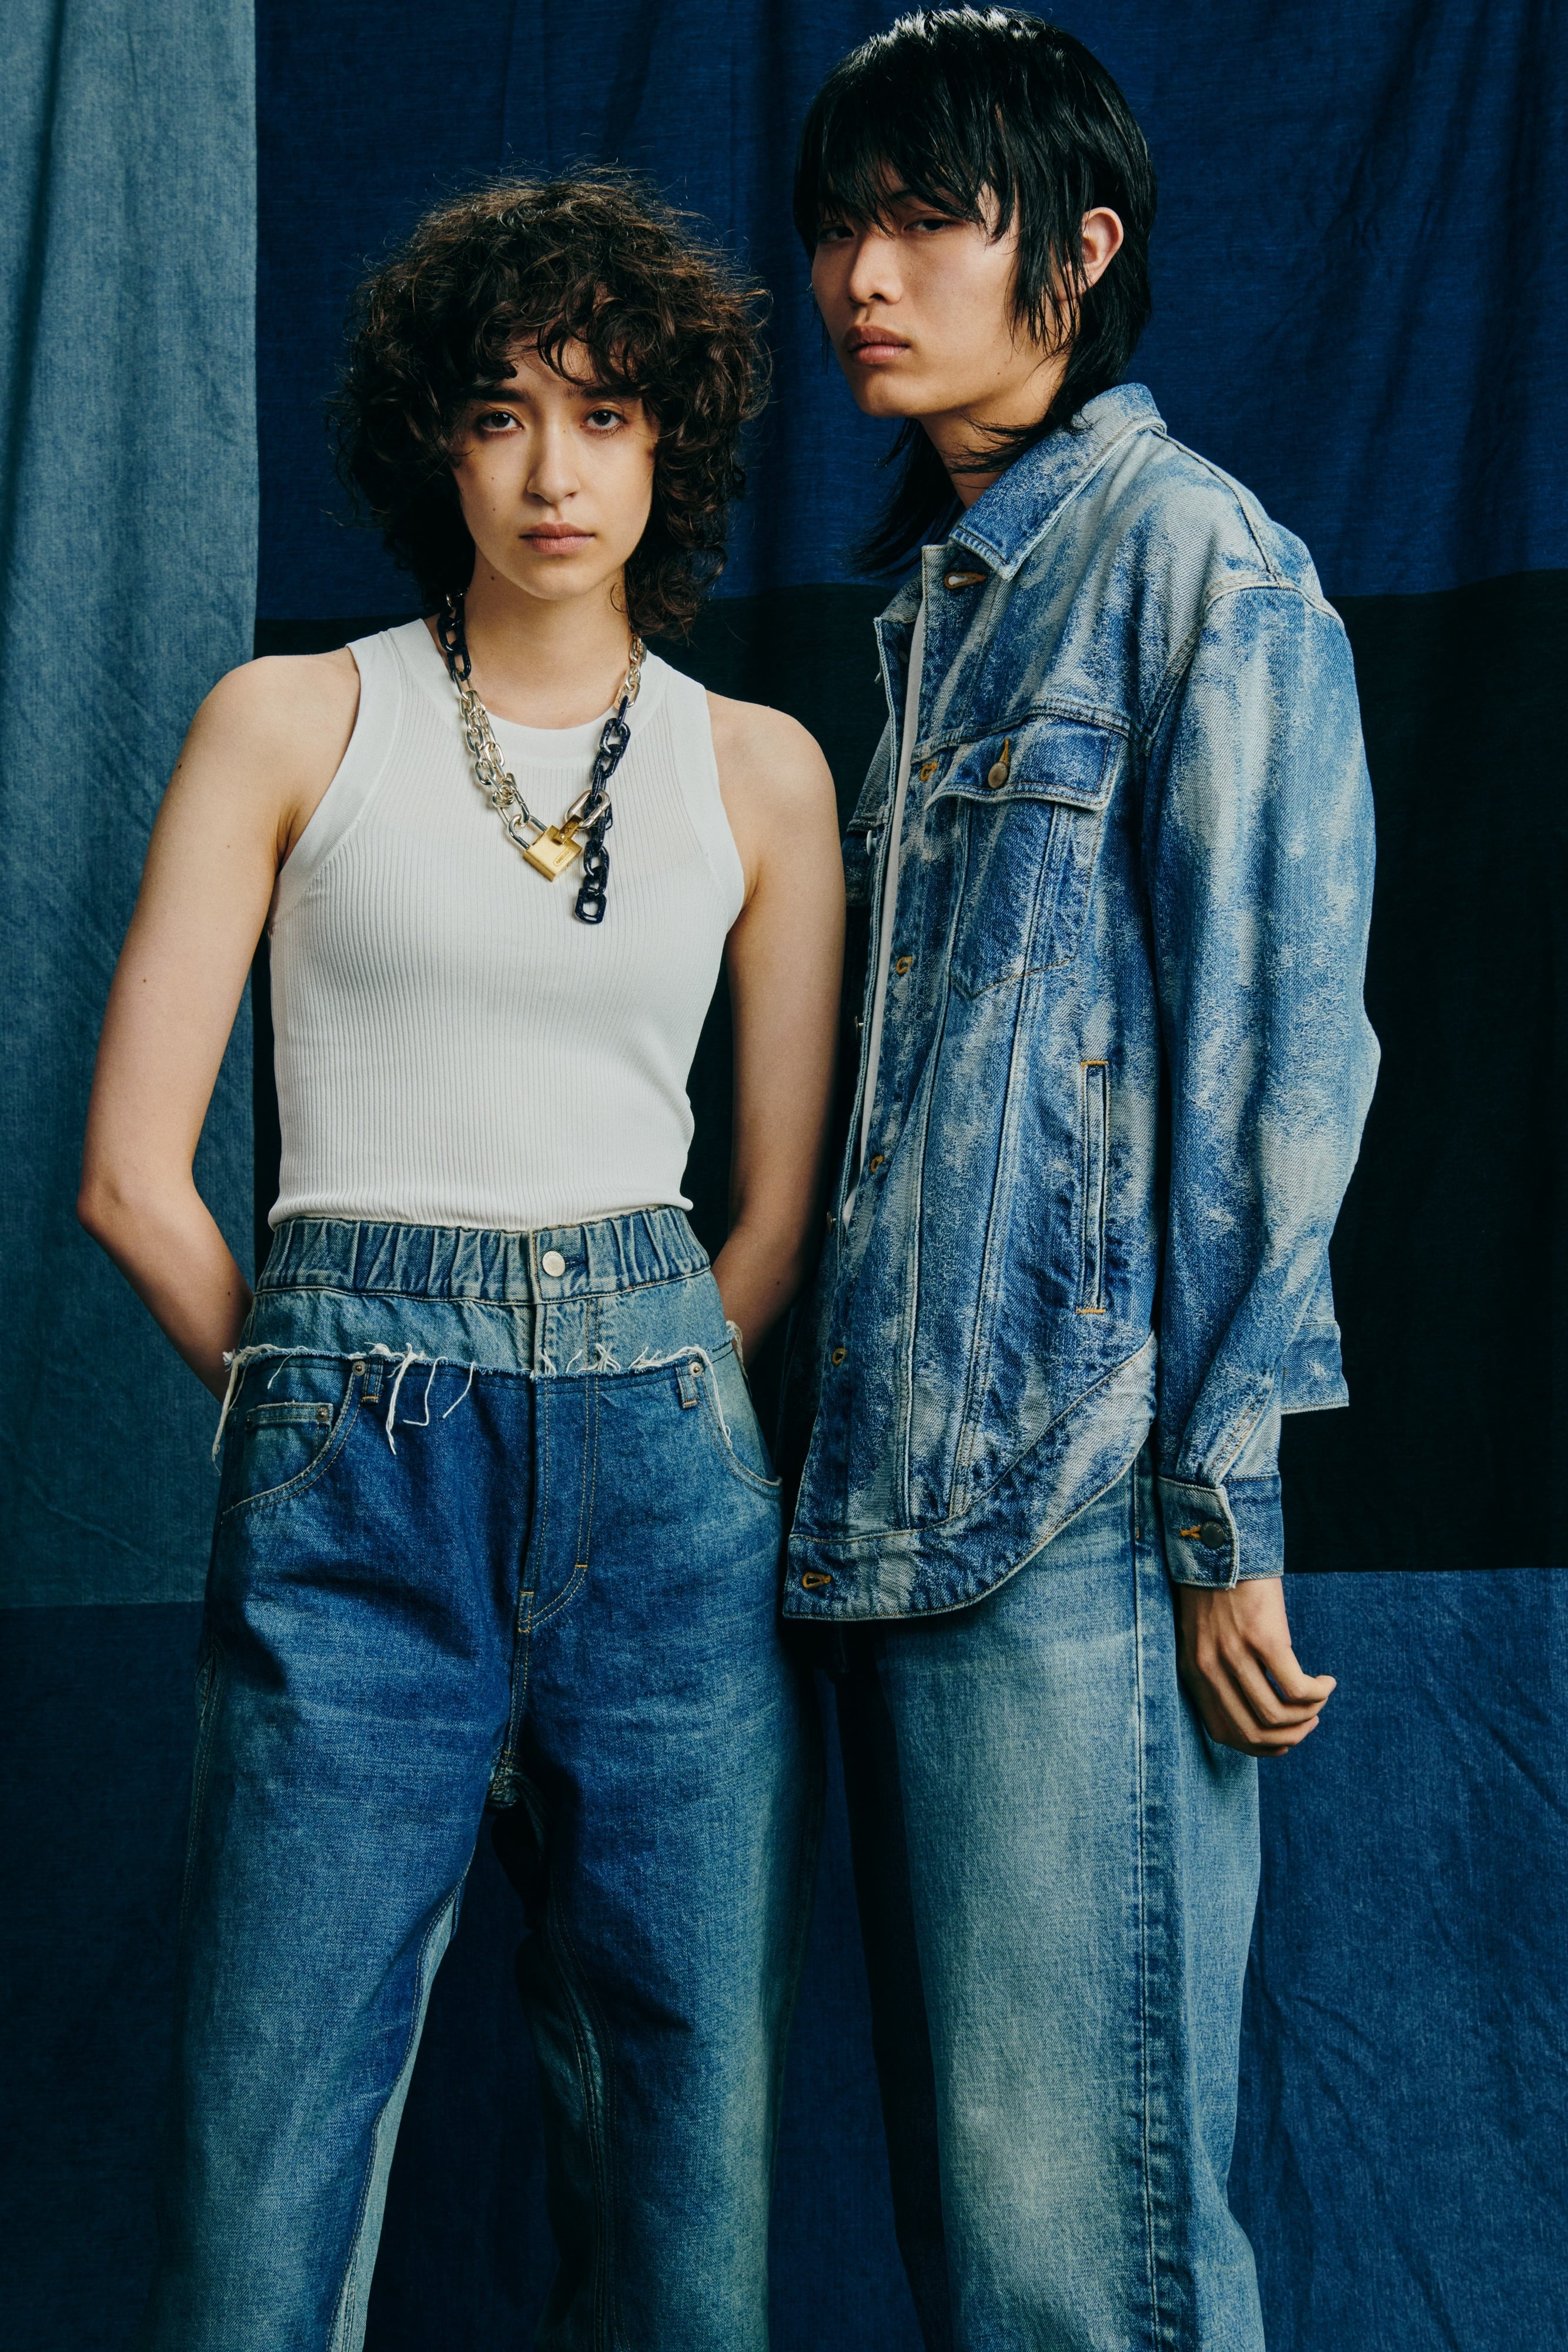 denim image by ambush